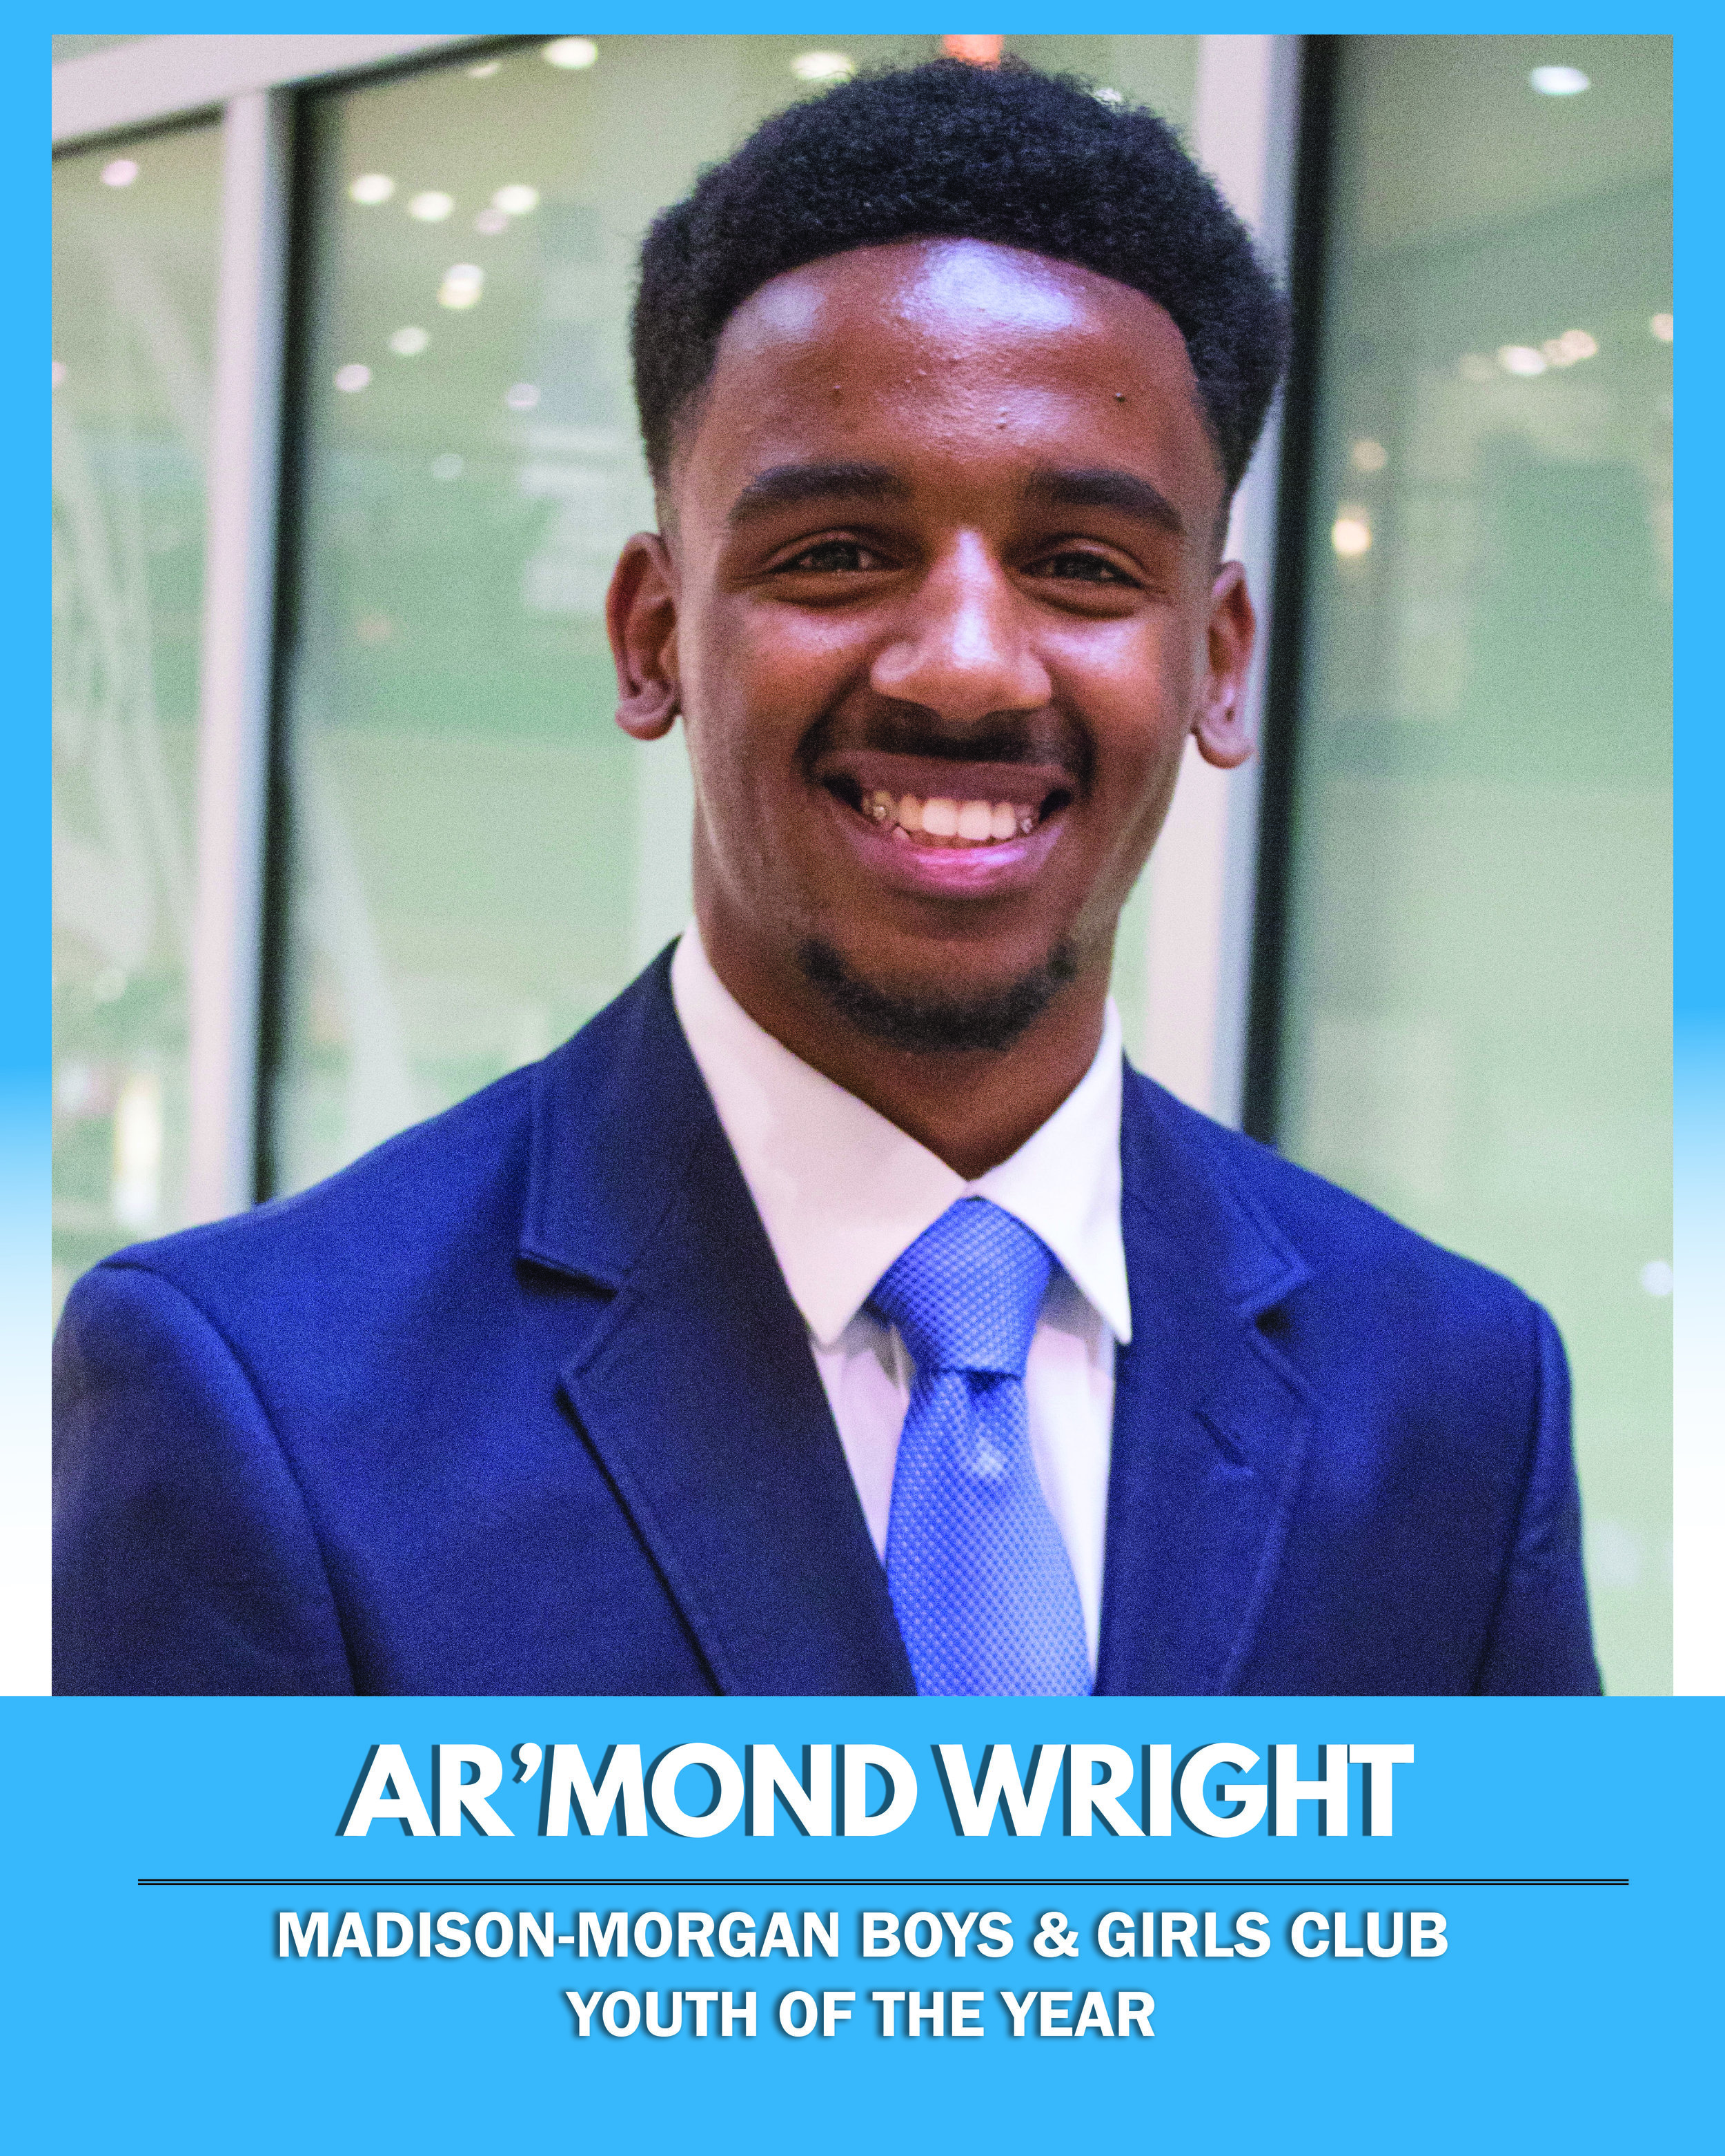 ARMOND WRIGHT HEADSHOT.jpg